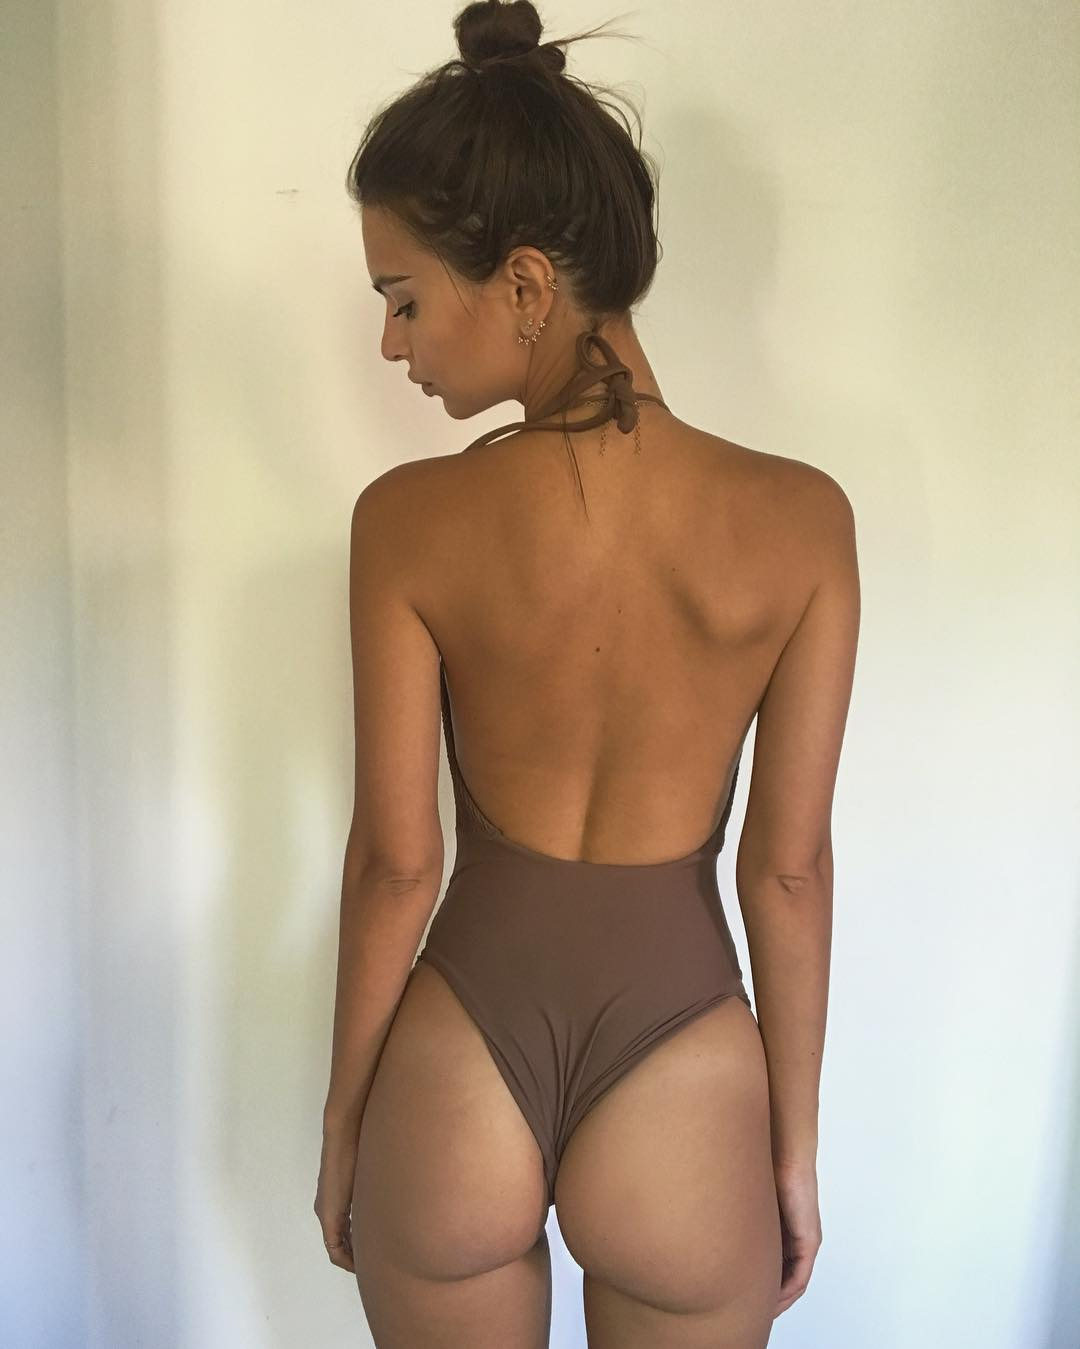 Ass Photos Of Emily Rataj...